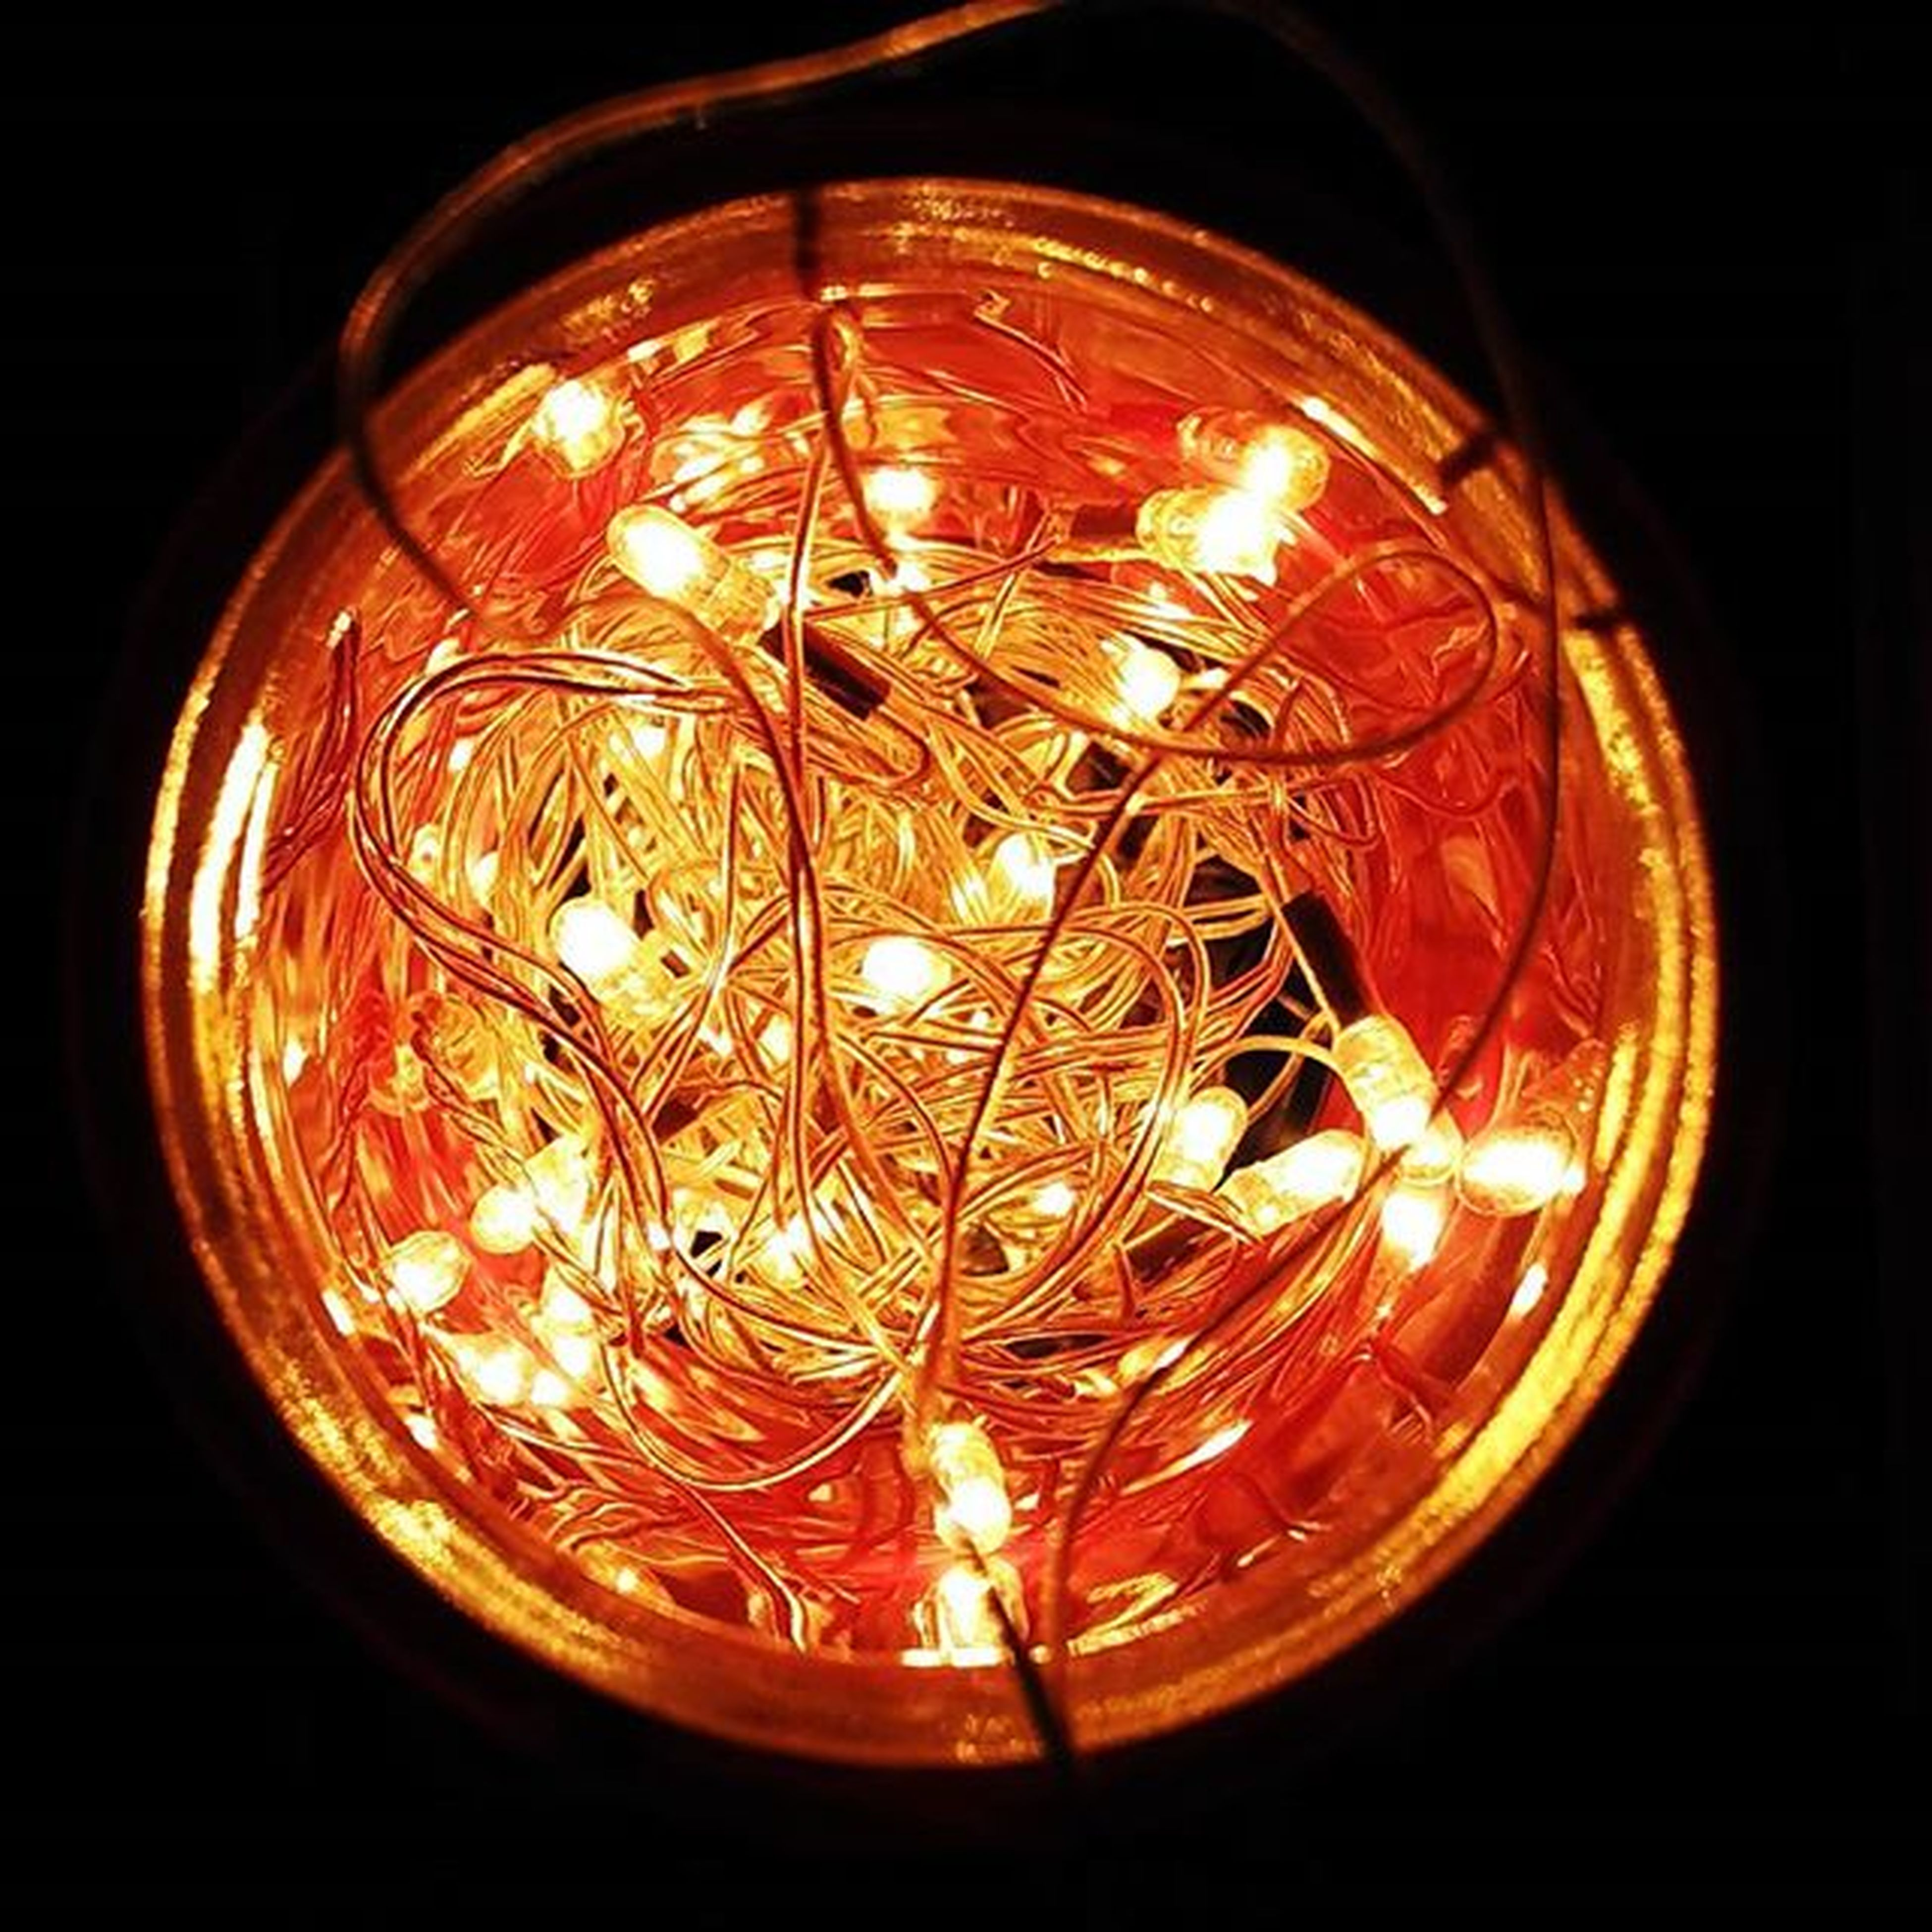 illuminated, night, glass - material, lighting equipment, low angle view, indoors, transparent, circle, glowing, dark, no people, decoration, pattern, close-up, electricity, reflection, geometric shape, window, religion, hanging